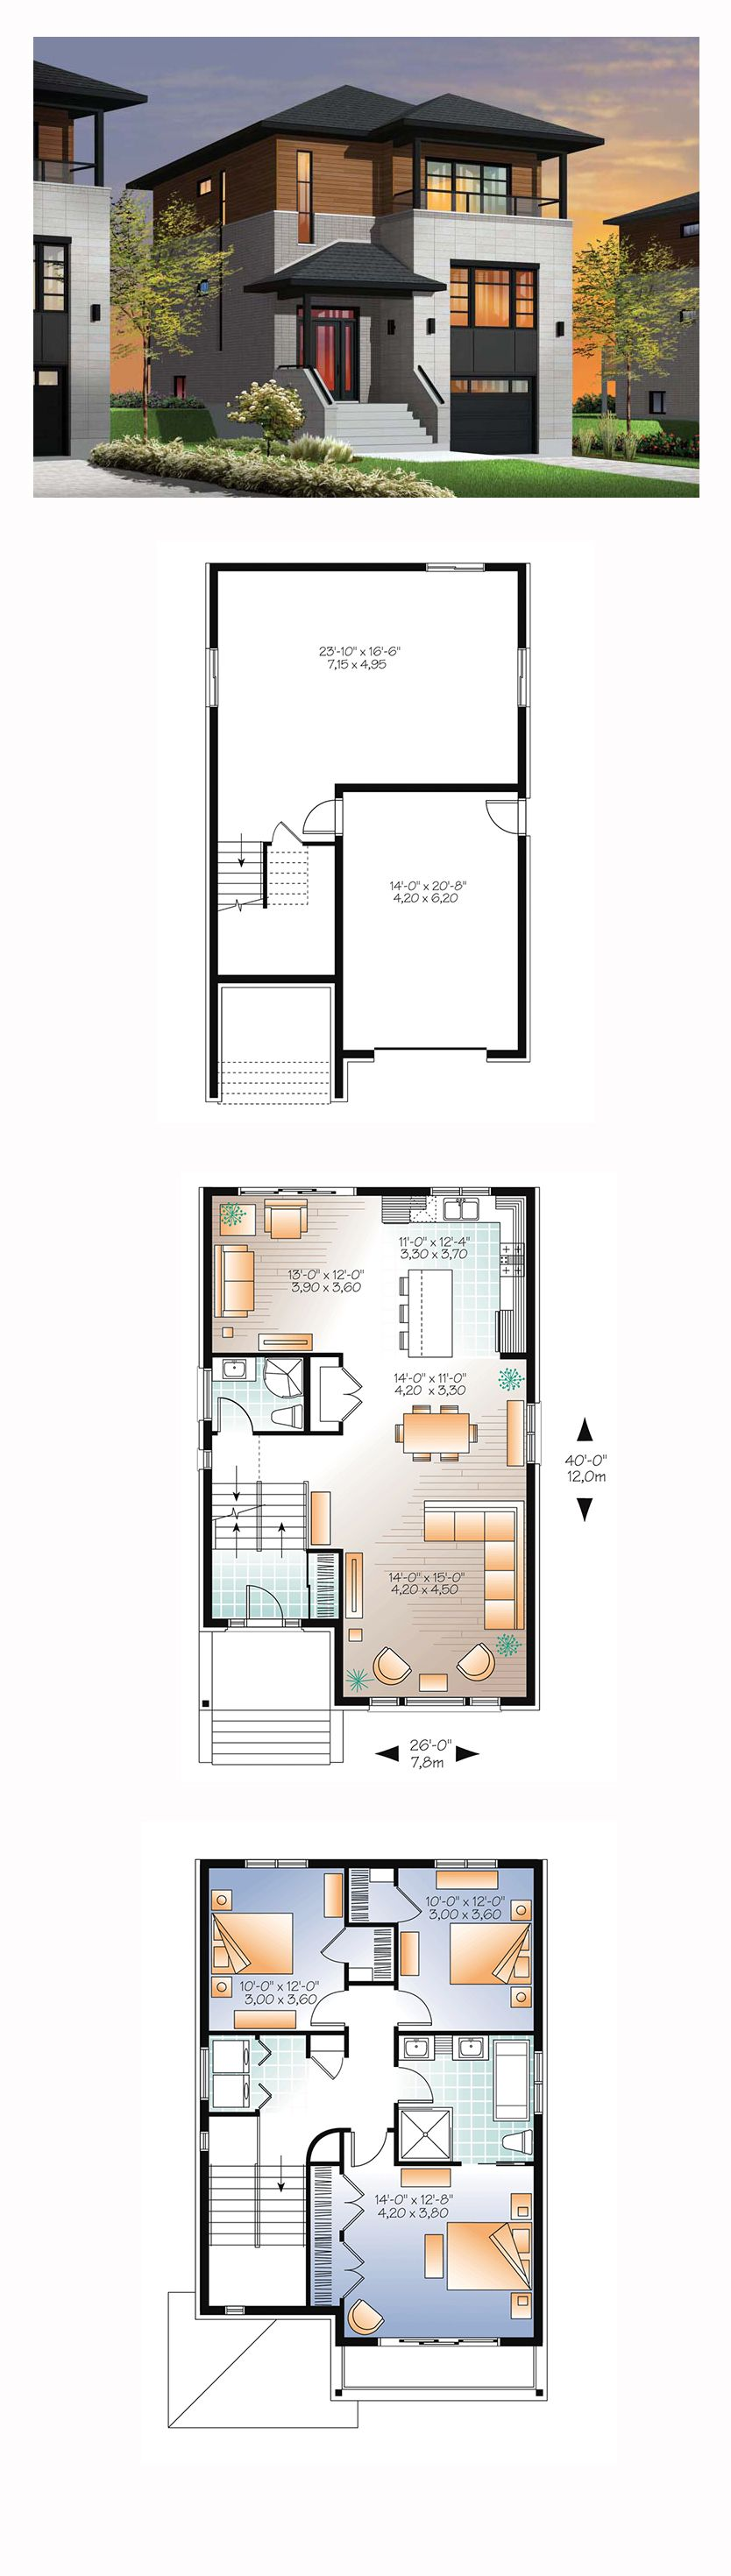 ^ ontemporary House Plans South frica. modern tuscan house plans ...